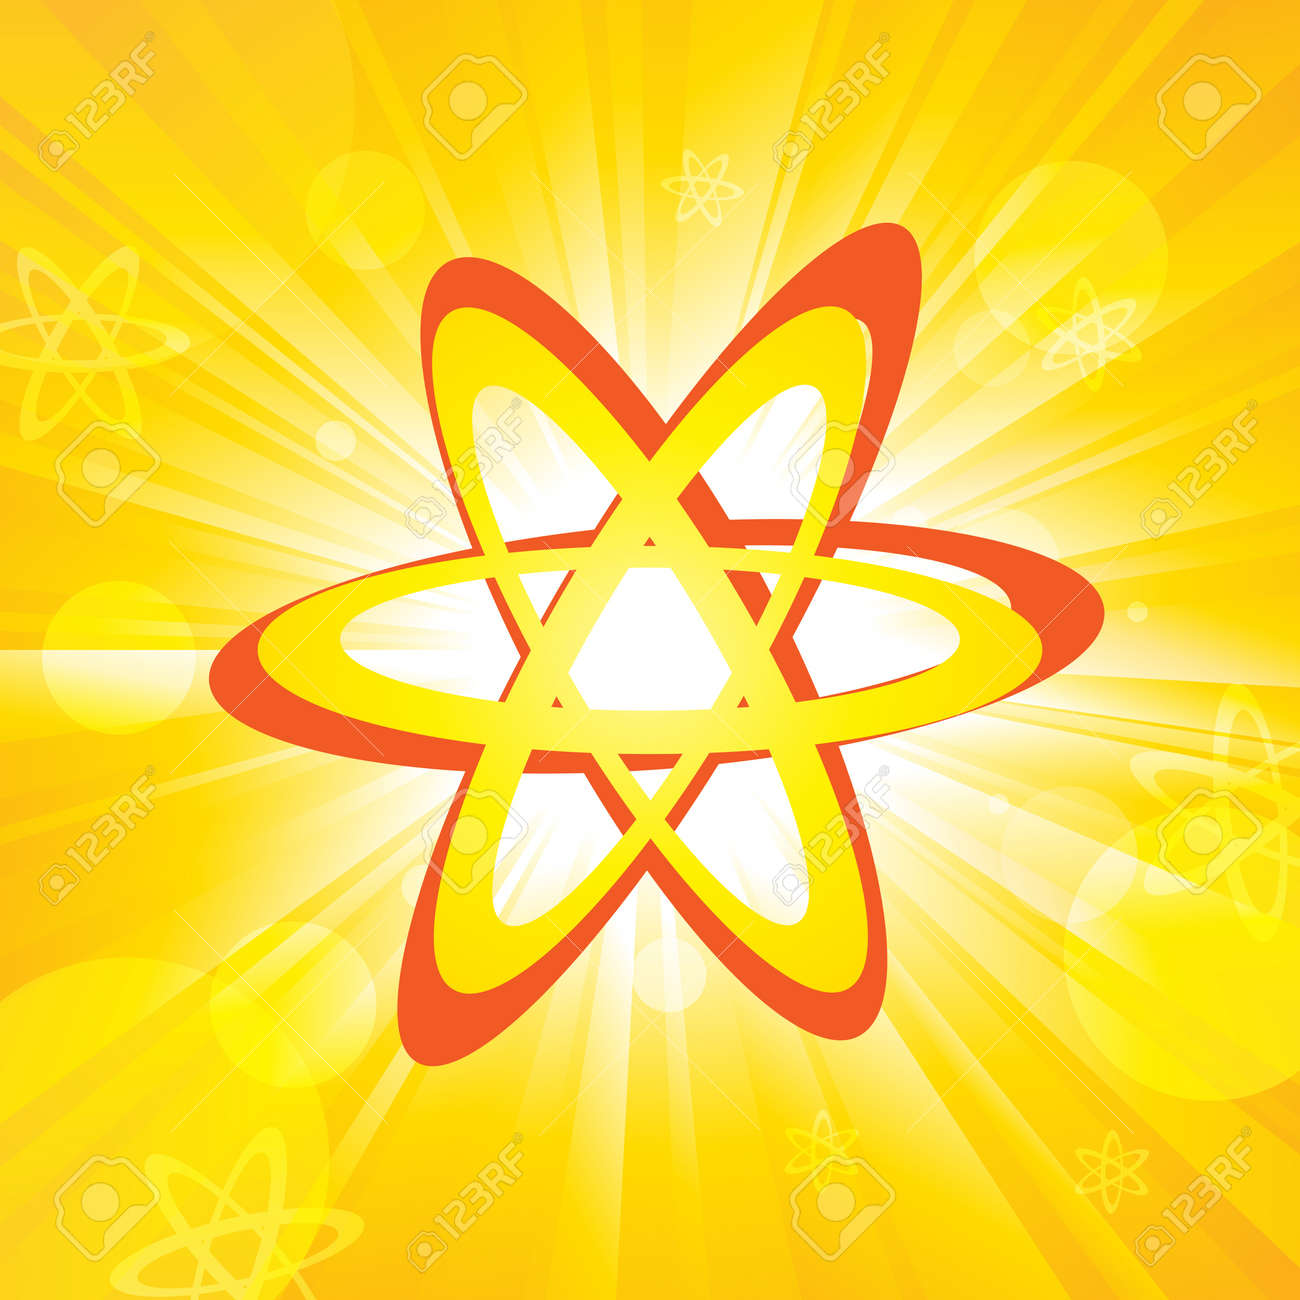 One single atom with atoms and orange colored background Stock Vector - 15205422